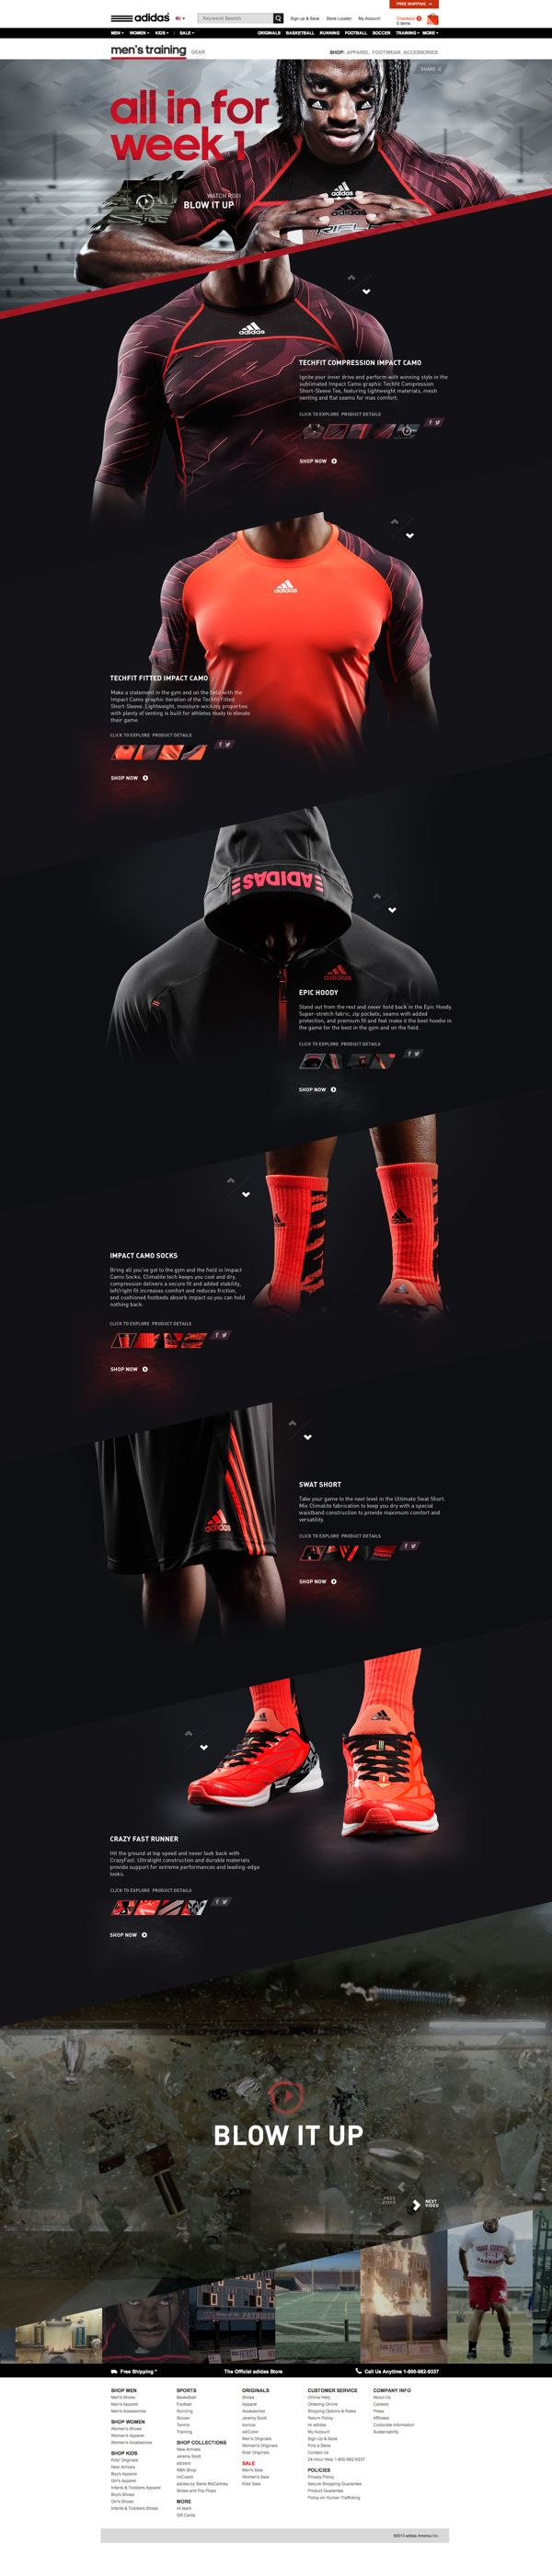 Cool Web Design on the Internet, Adidas. #webdesign #webdevelopment #website @ http://www.pinterest.com/alfredchong/web-design/